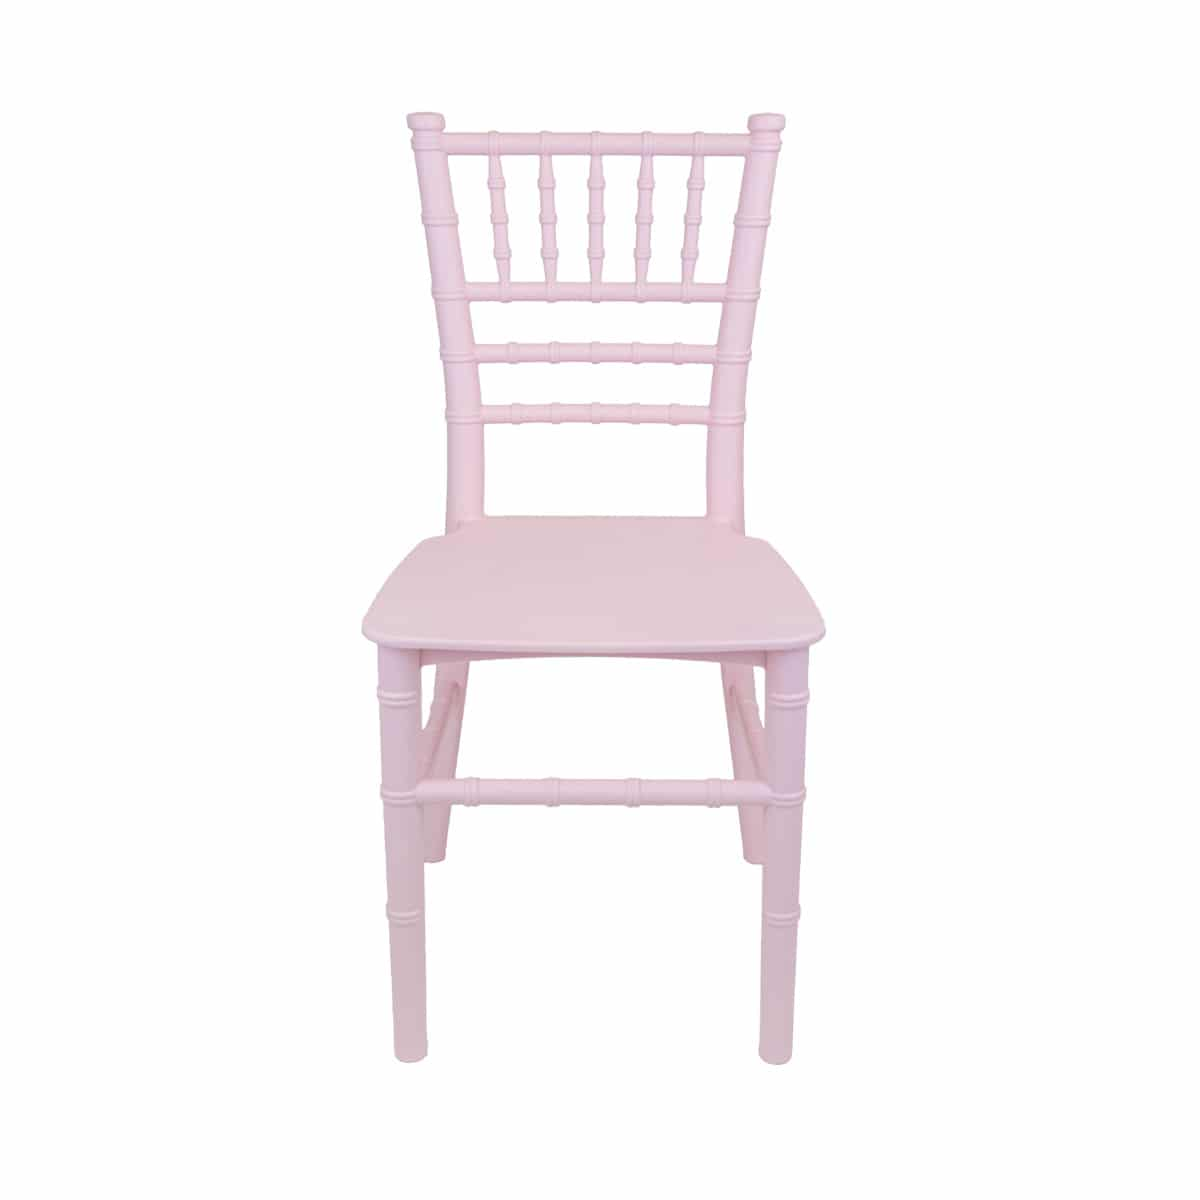 child sized chairs baby feeding makro size tiffany chair the classic chiavari for kids